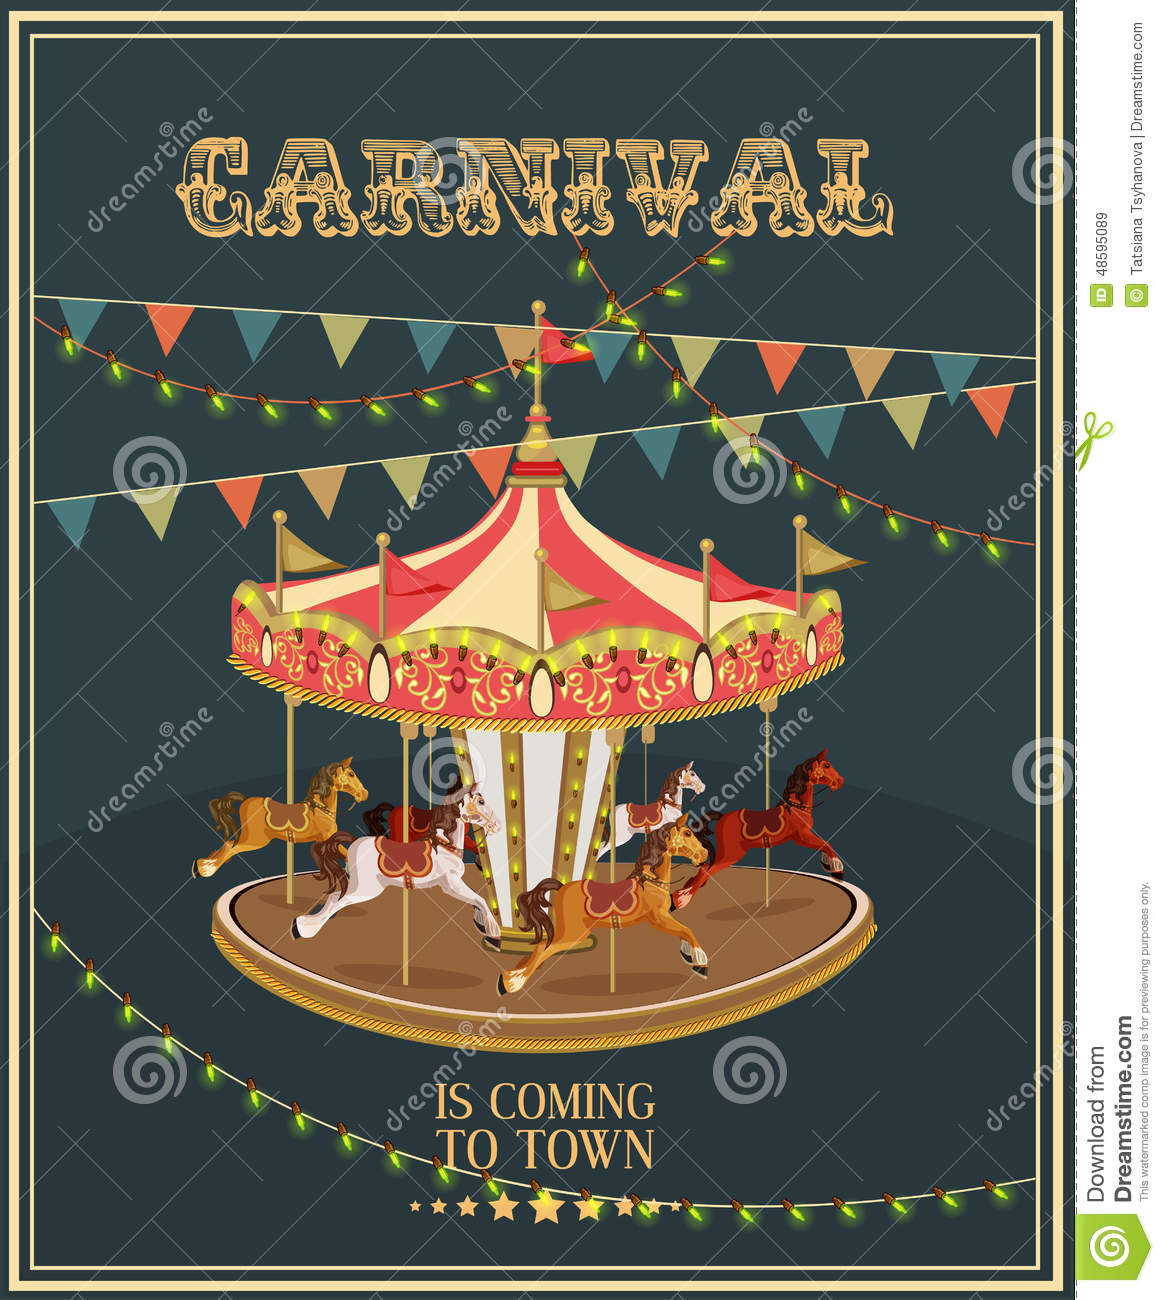 merry go round horse template - carnival poster with merry go round in vintage style